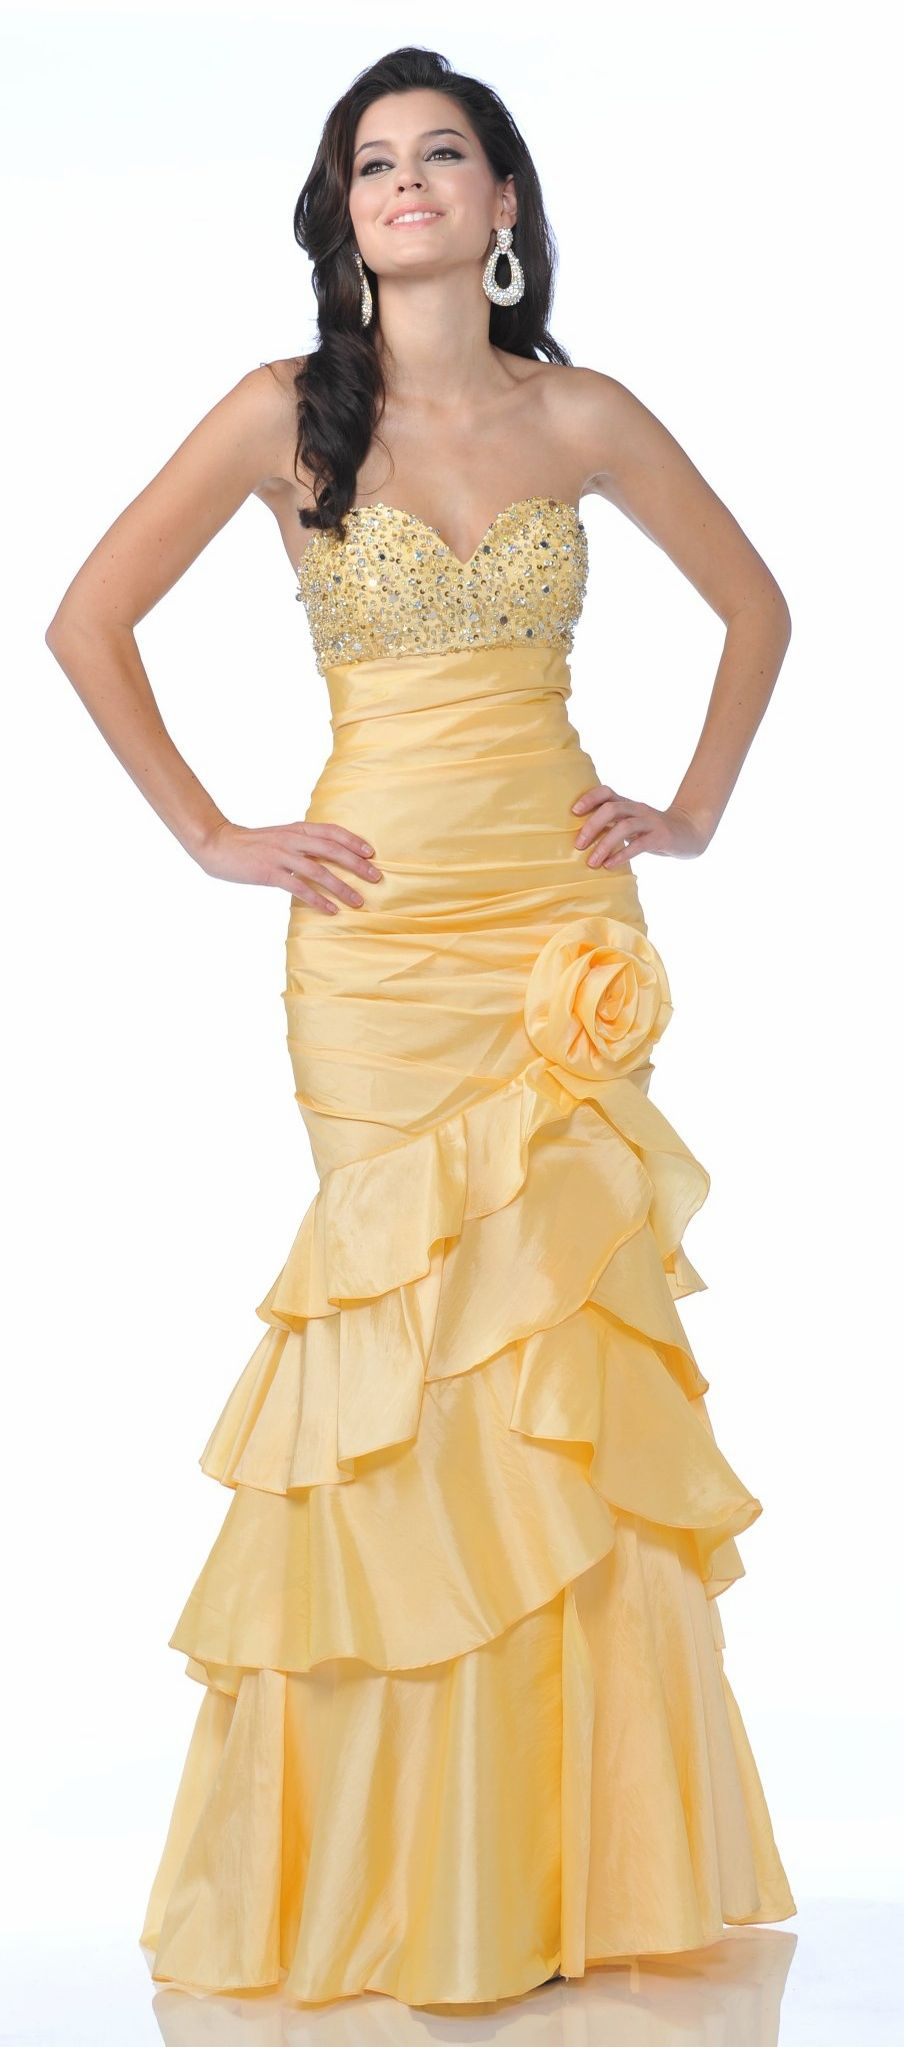 Yellow mermaid prom gown strapless rhinestone bodice long tier layer